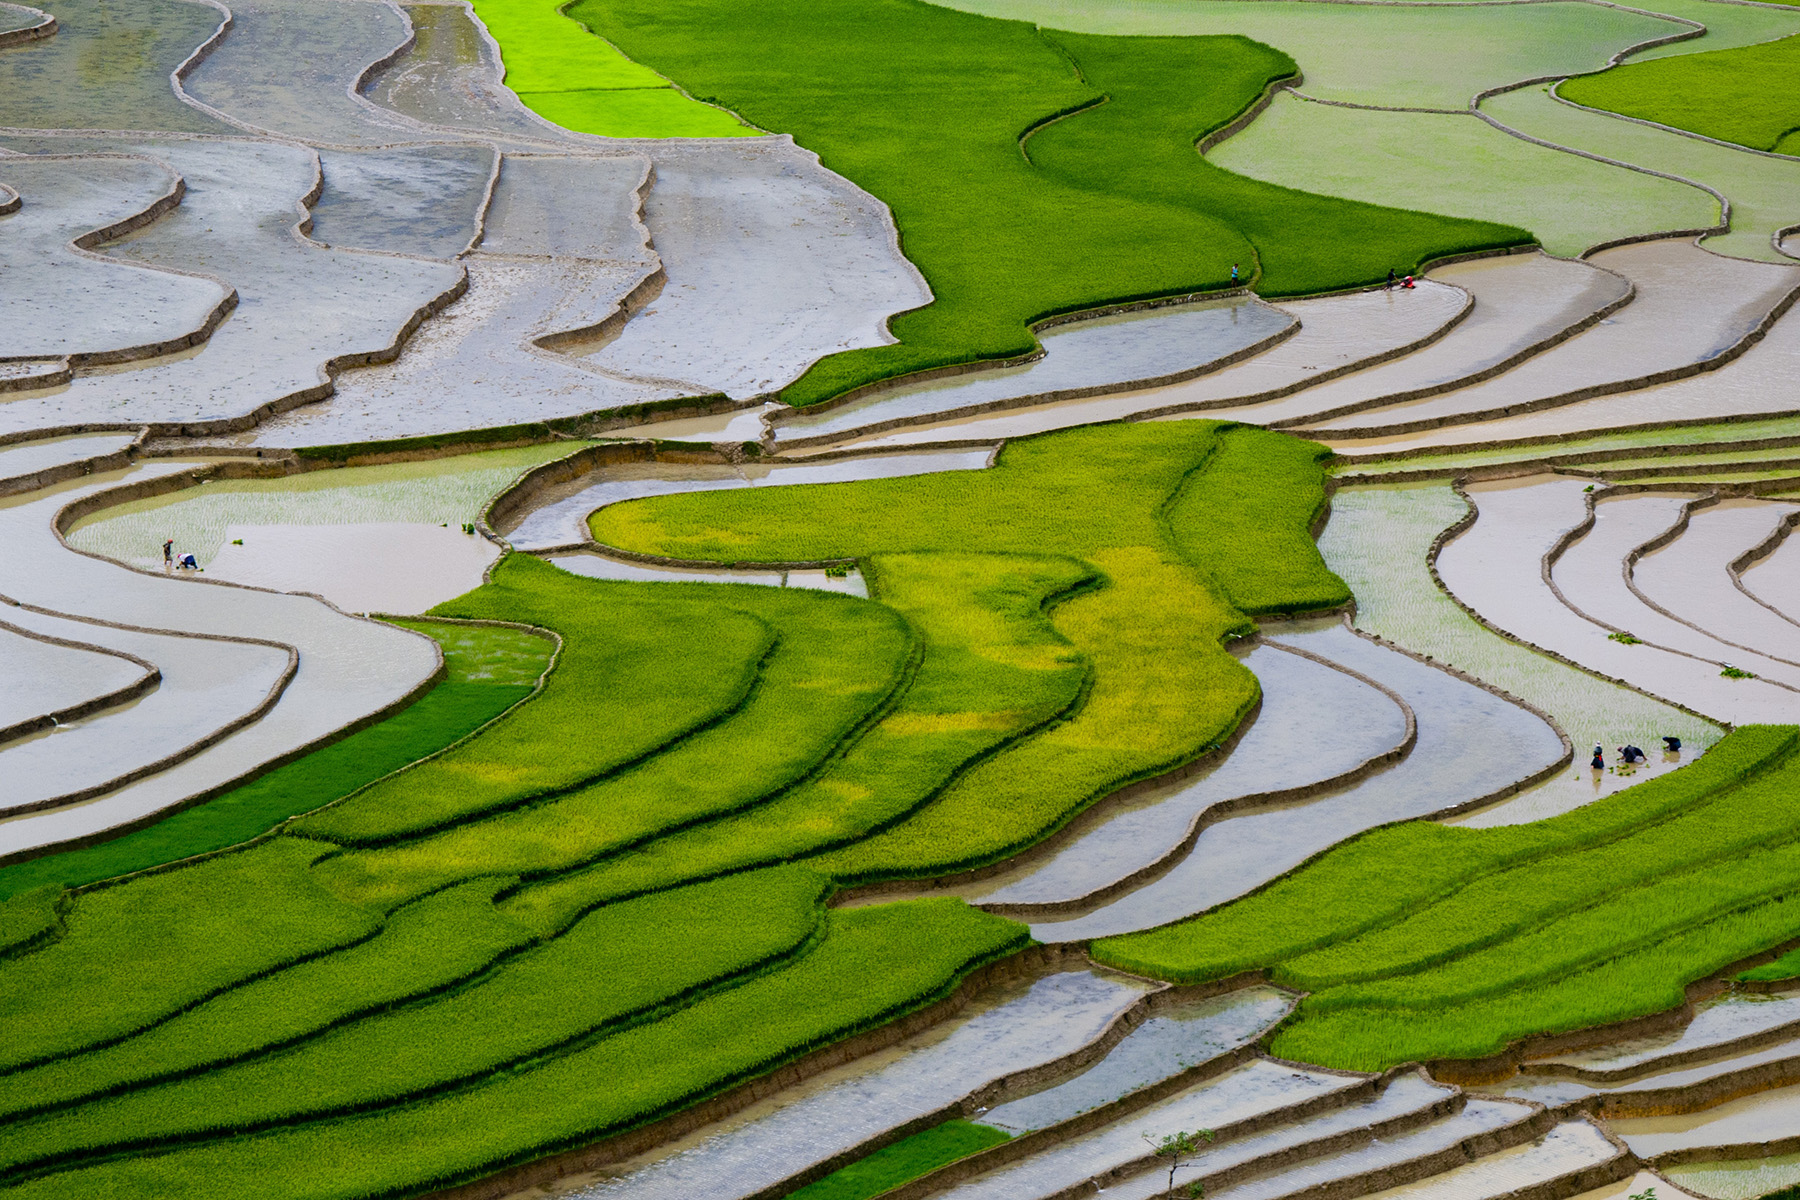 Untapped rice varieties could sustain crop supplies in face of climate change